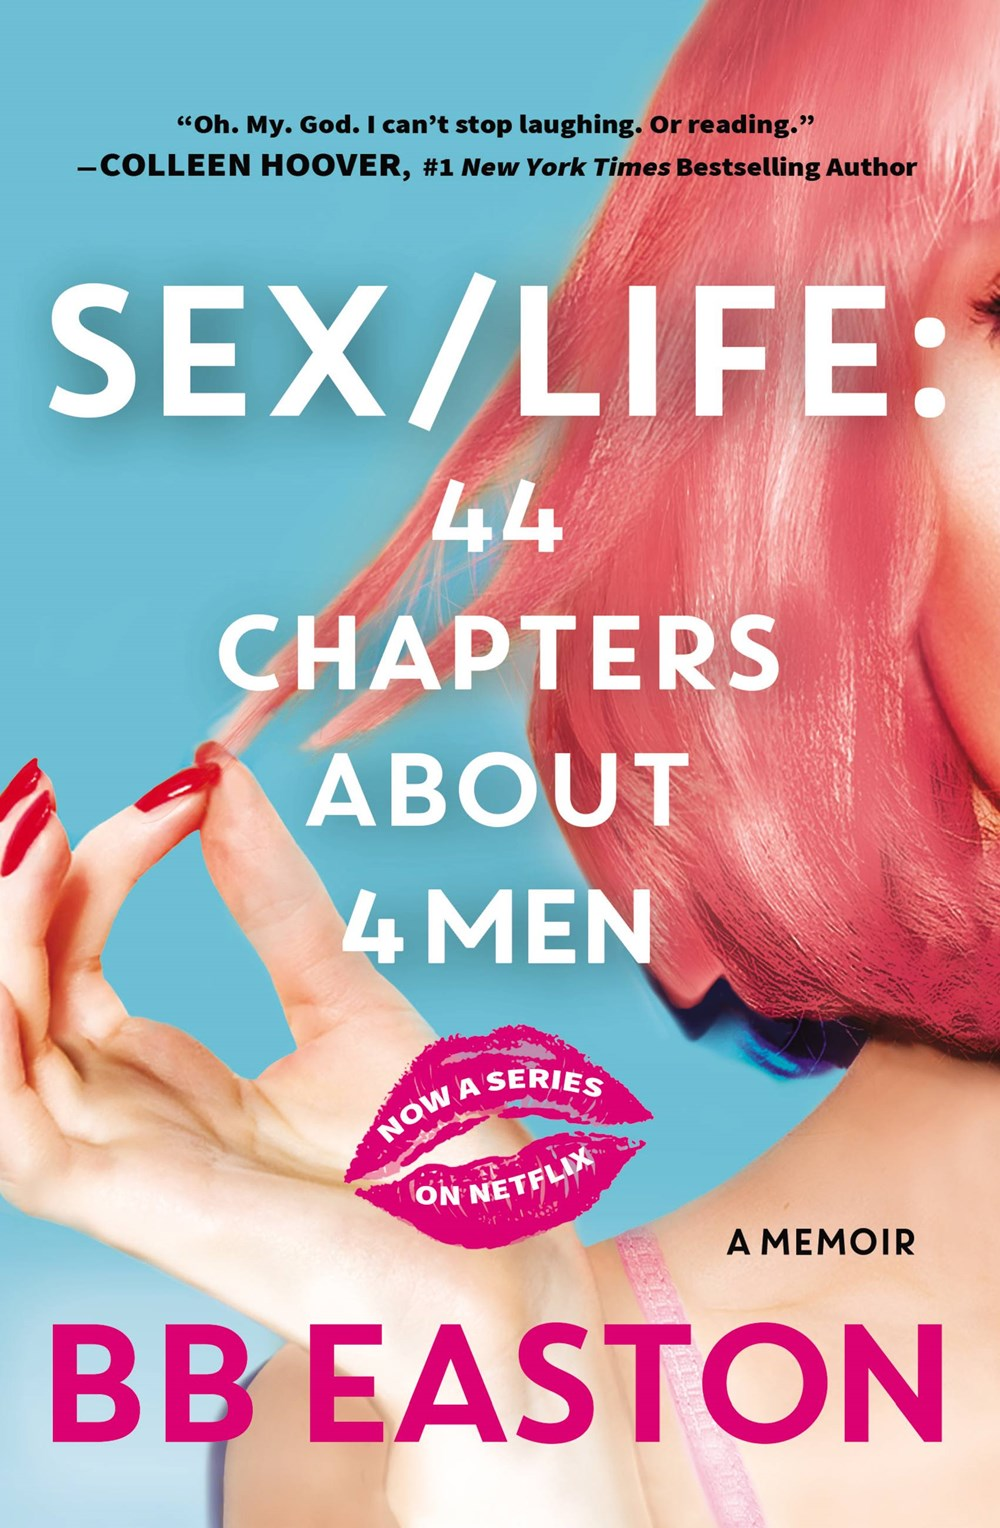 Sex/Life: 44 Chapters About 4 Men by BB Easton